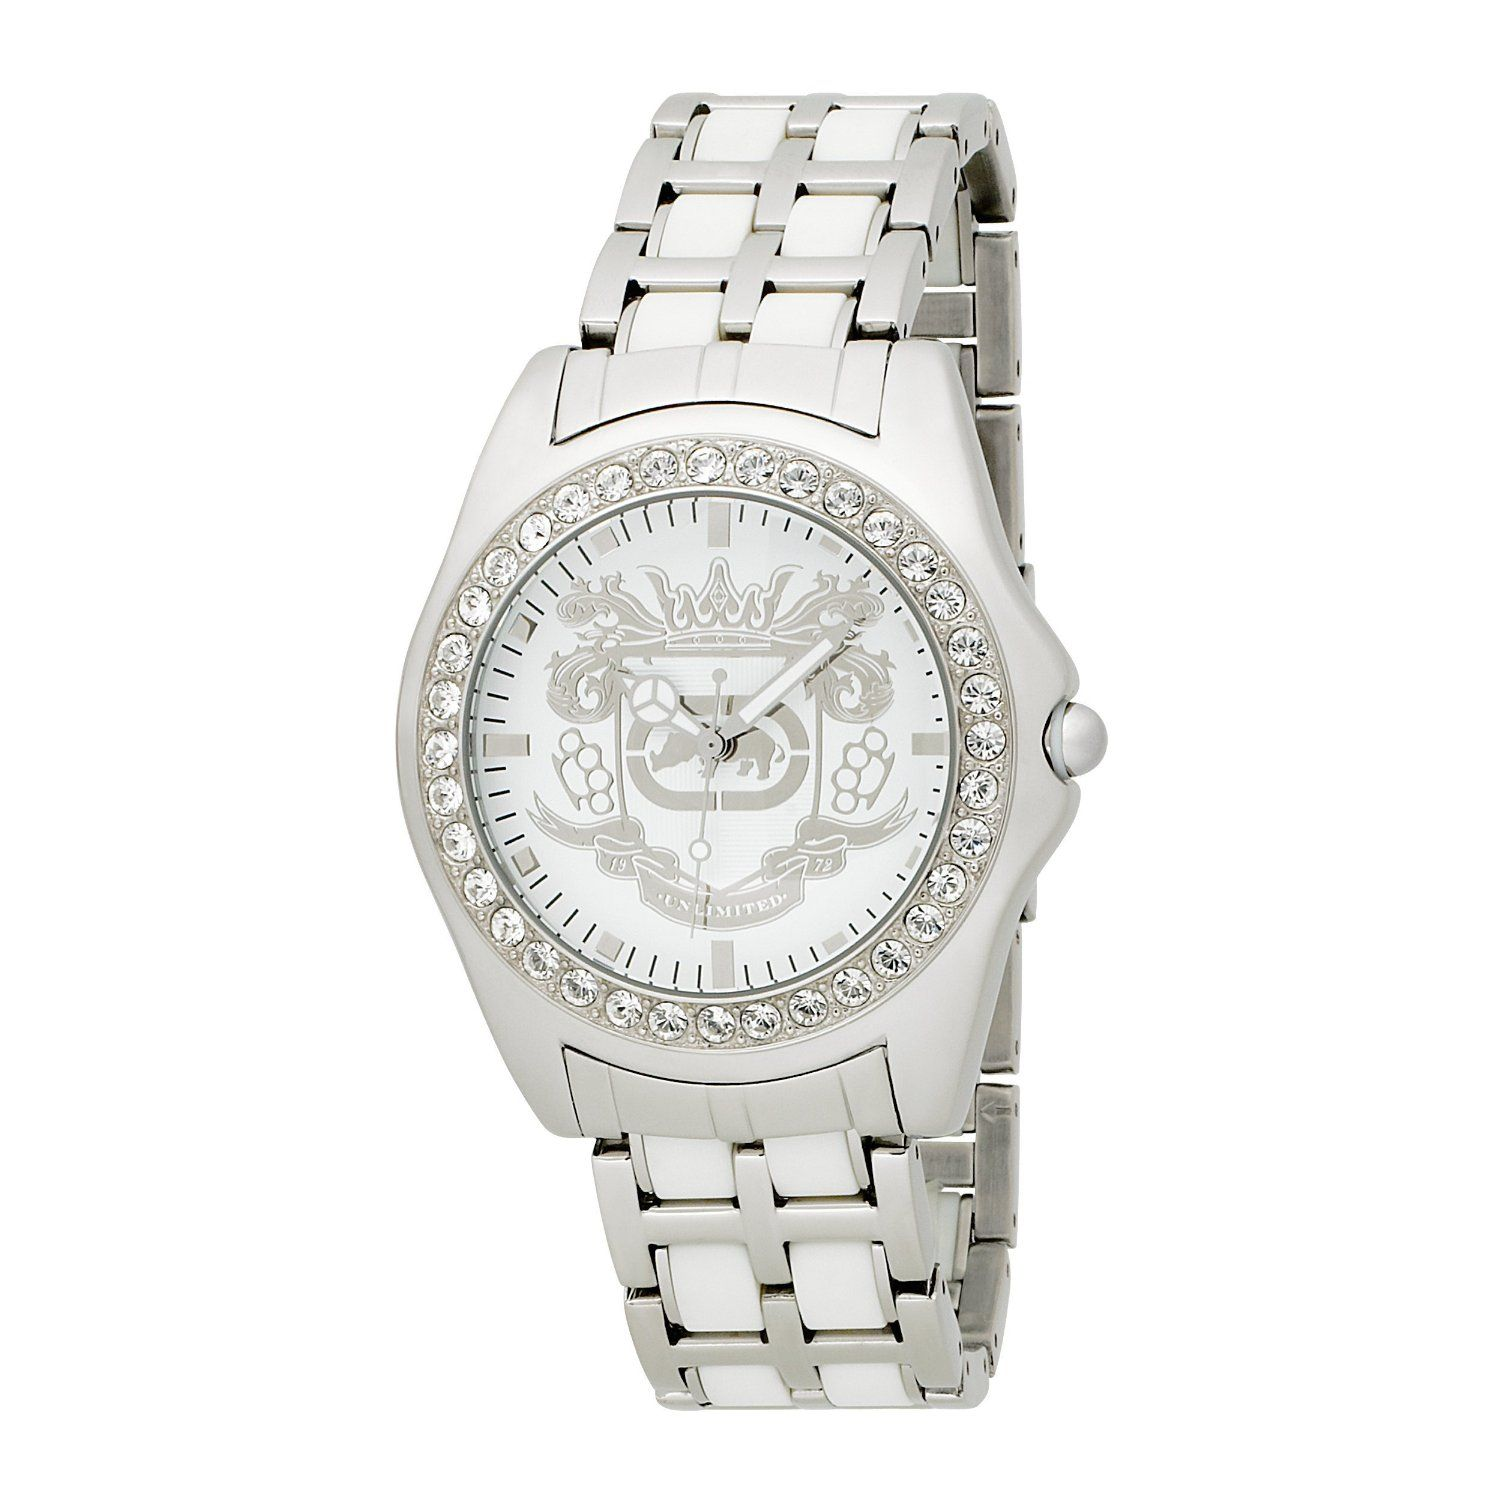 Marc Ecko Men's E95016G6 White Dial Bracelet Watch - Studly shine by Marc Ecko. Watch features a stainless steel bracelet and round case. Swarovski crystal-accented bezel. White dial with etched crest and silvertone stick indices. Quartz movement. Water resistant to 50 meters.